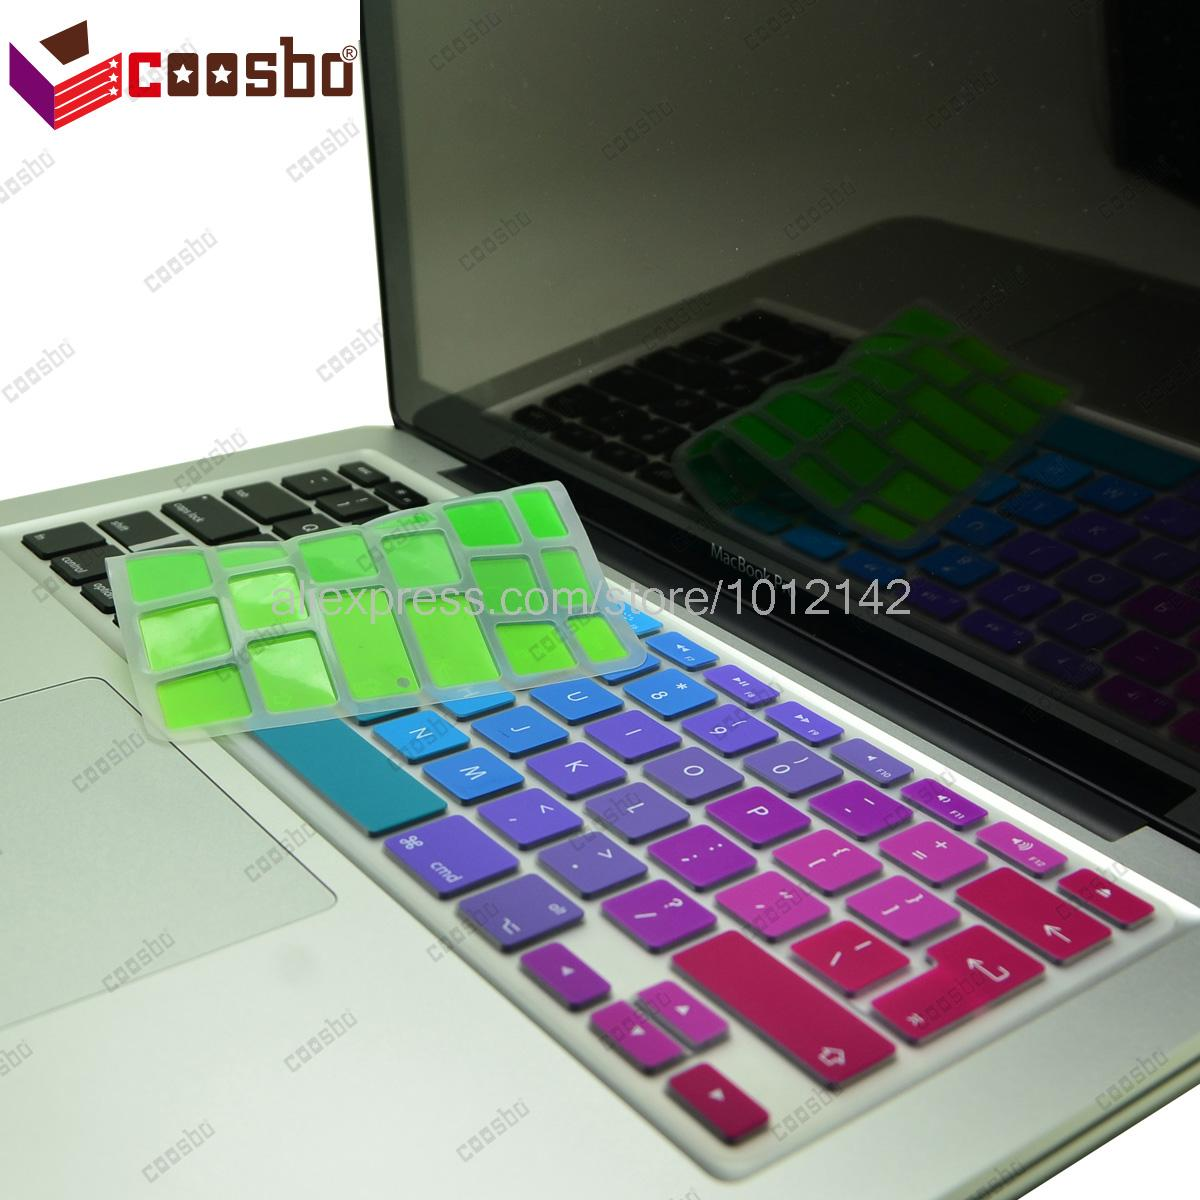 50pcs Wholesale Price colorful EU/UK keyboard Cover Skin For Apple Mac MacBook air pro retina 11 13 15 17 Protecter Film gift